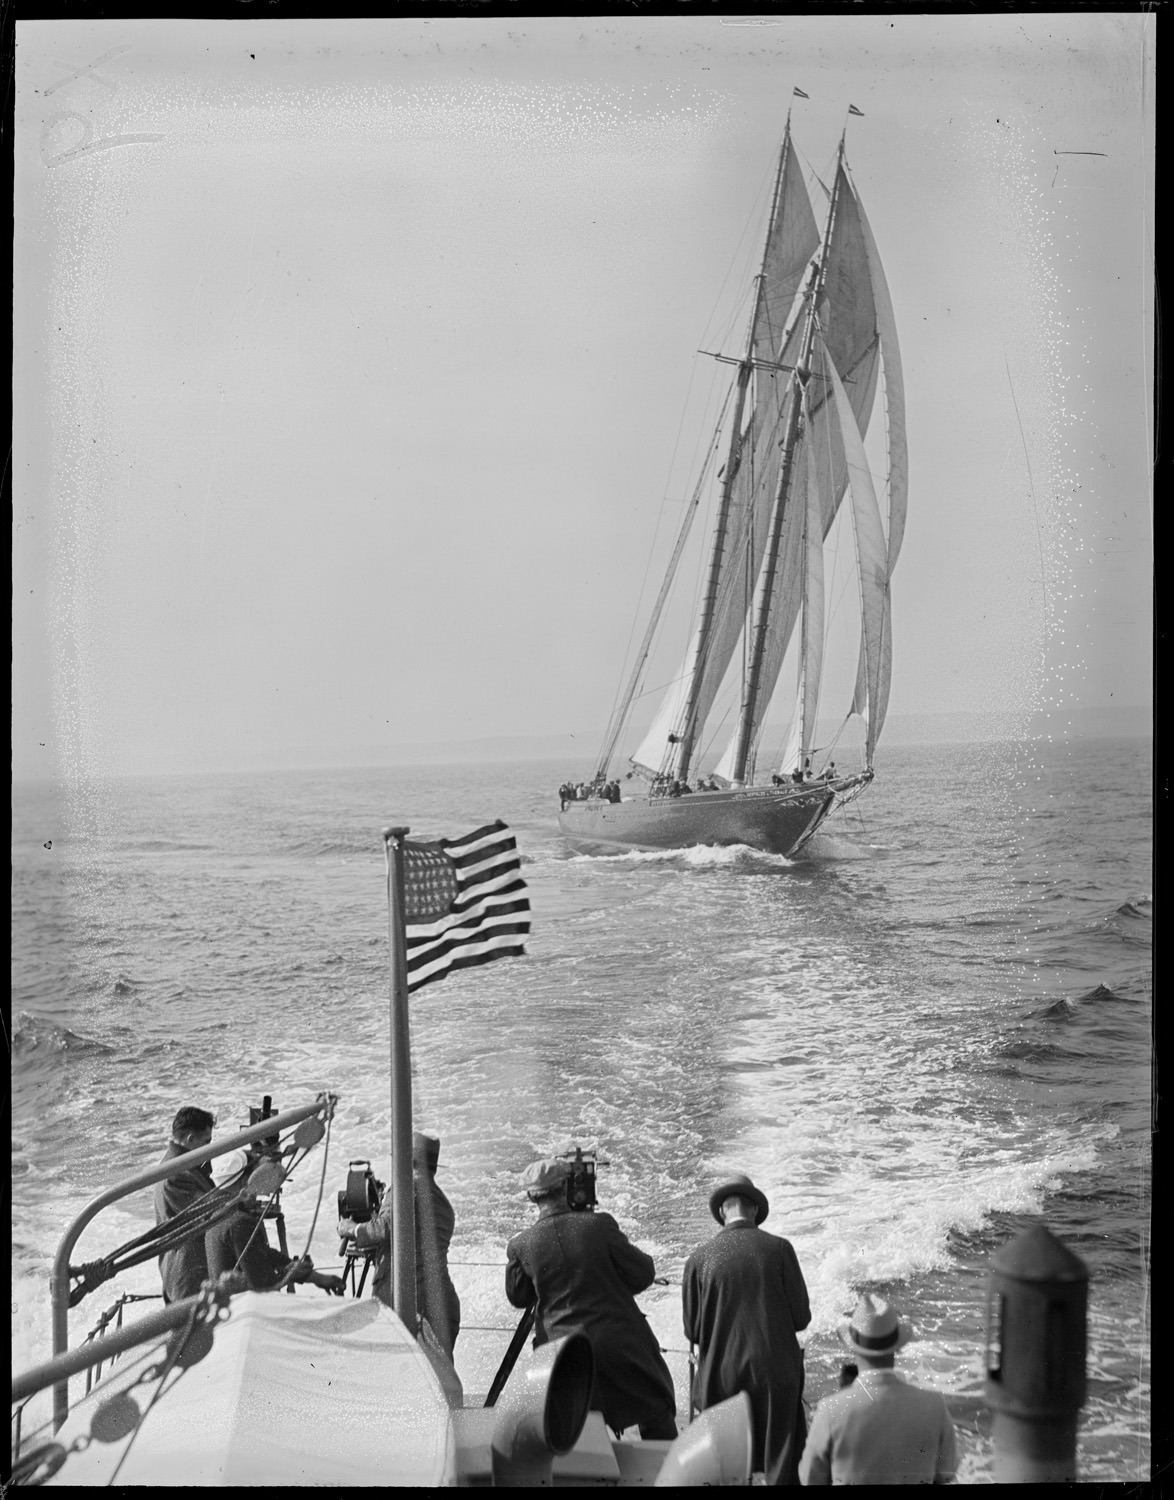 Gertrude L. Thebaud under sail